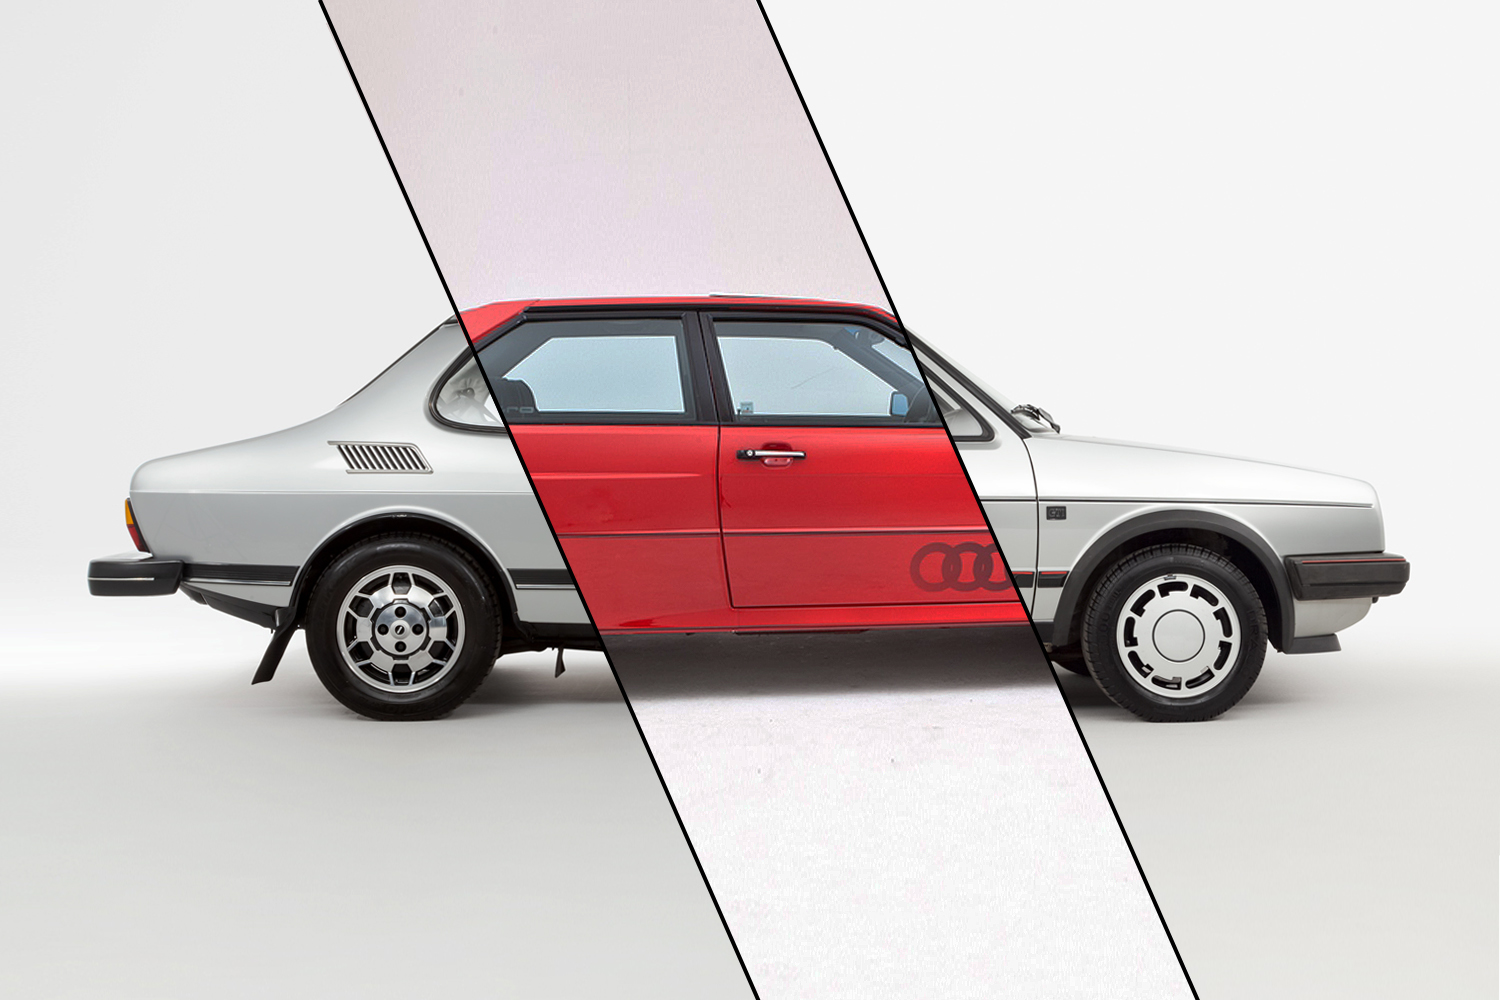 These are the best modern classic cars of the last 50 years